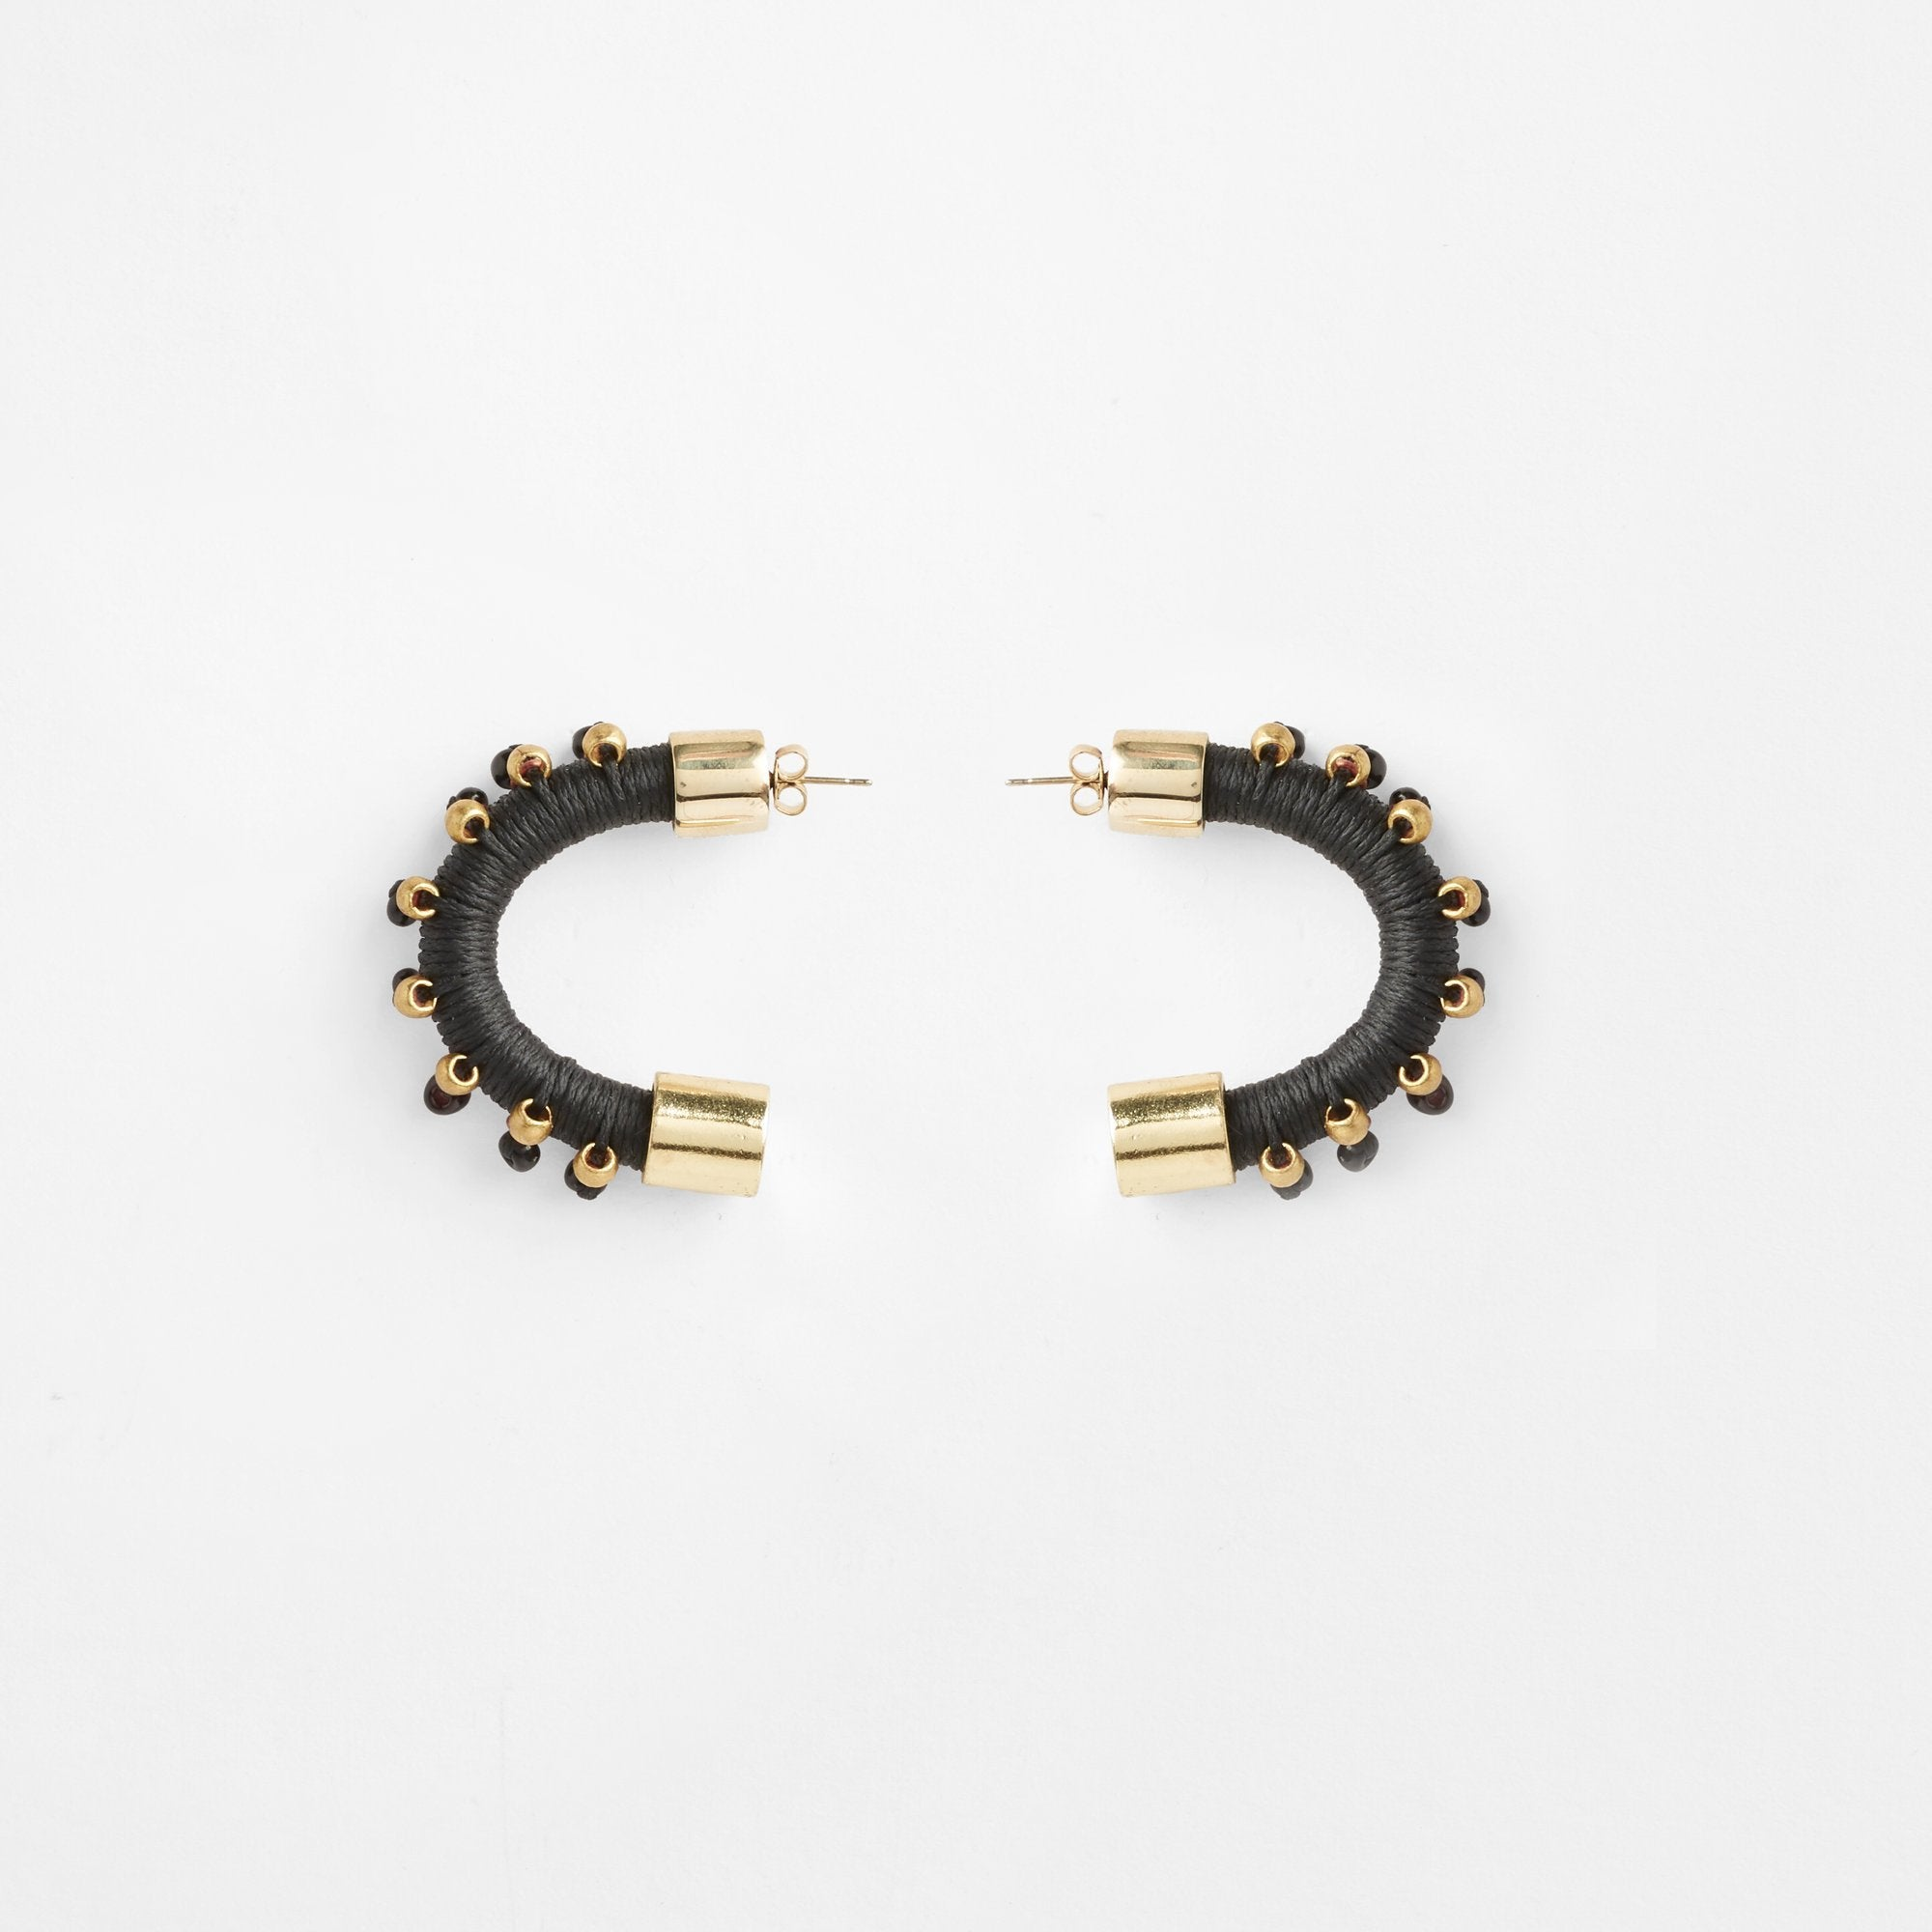 Magi_earring_-_Black_2000x.jpg